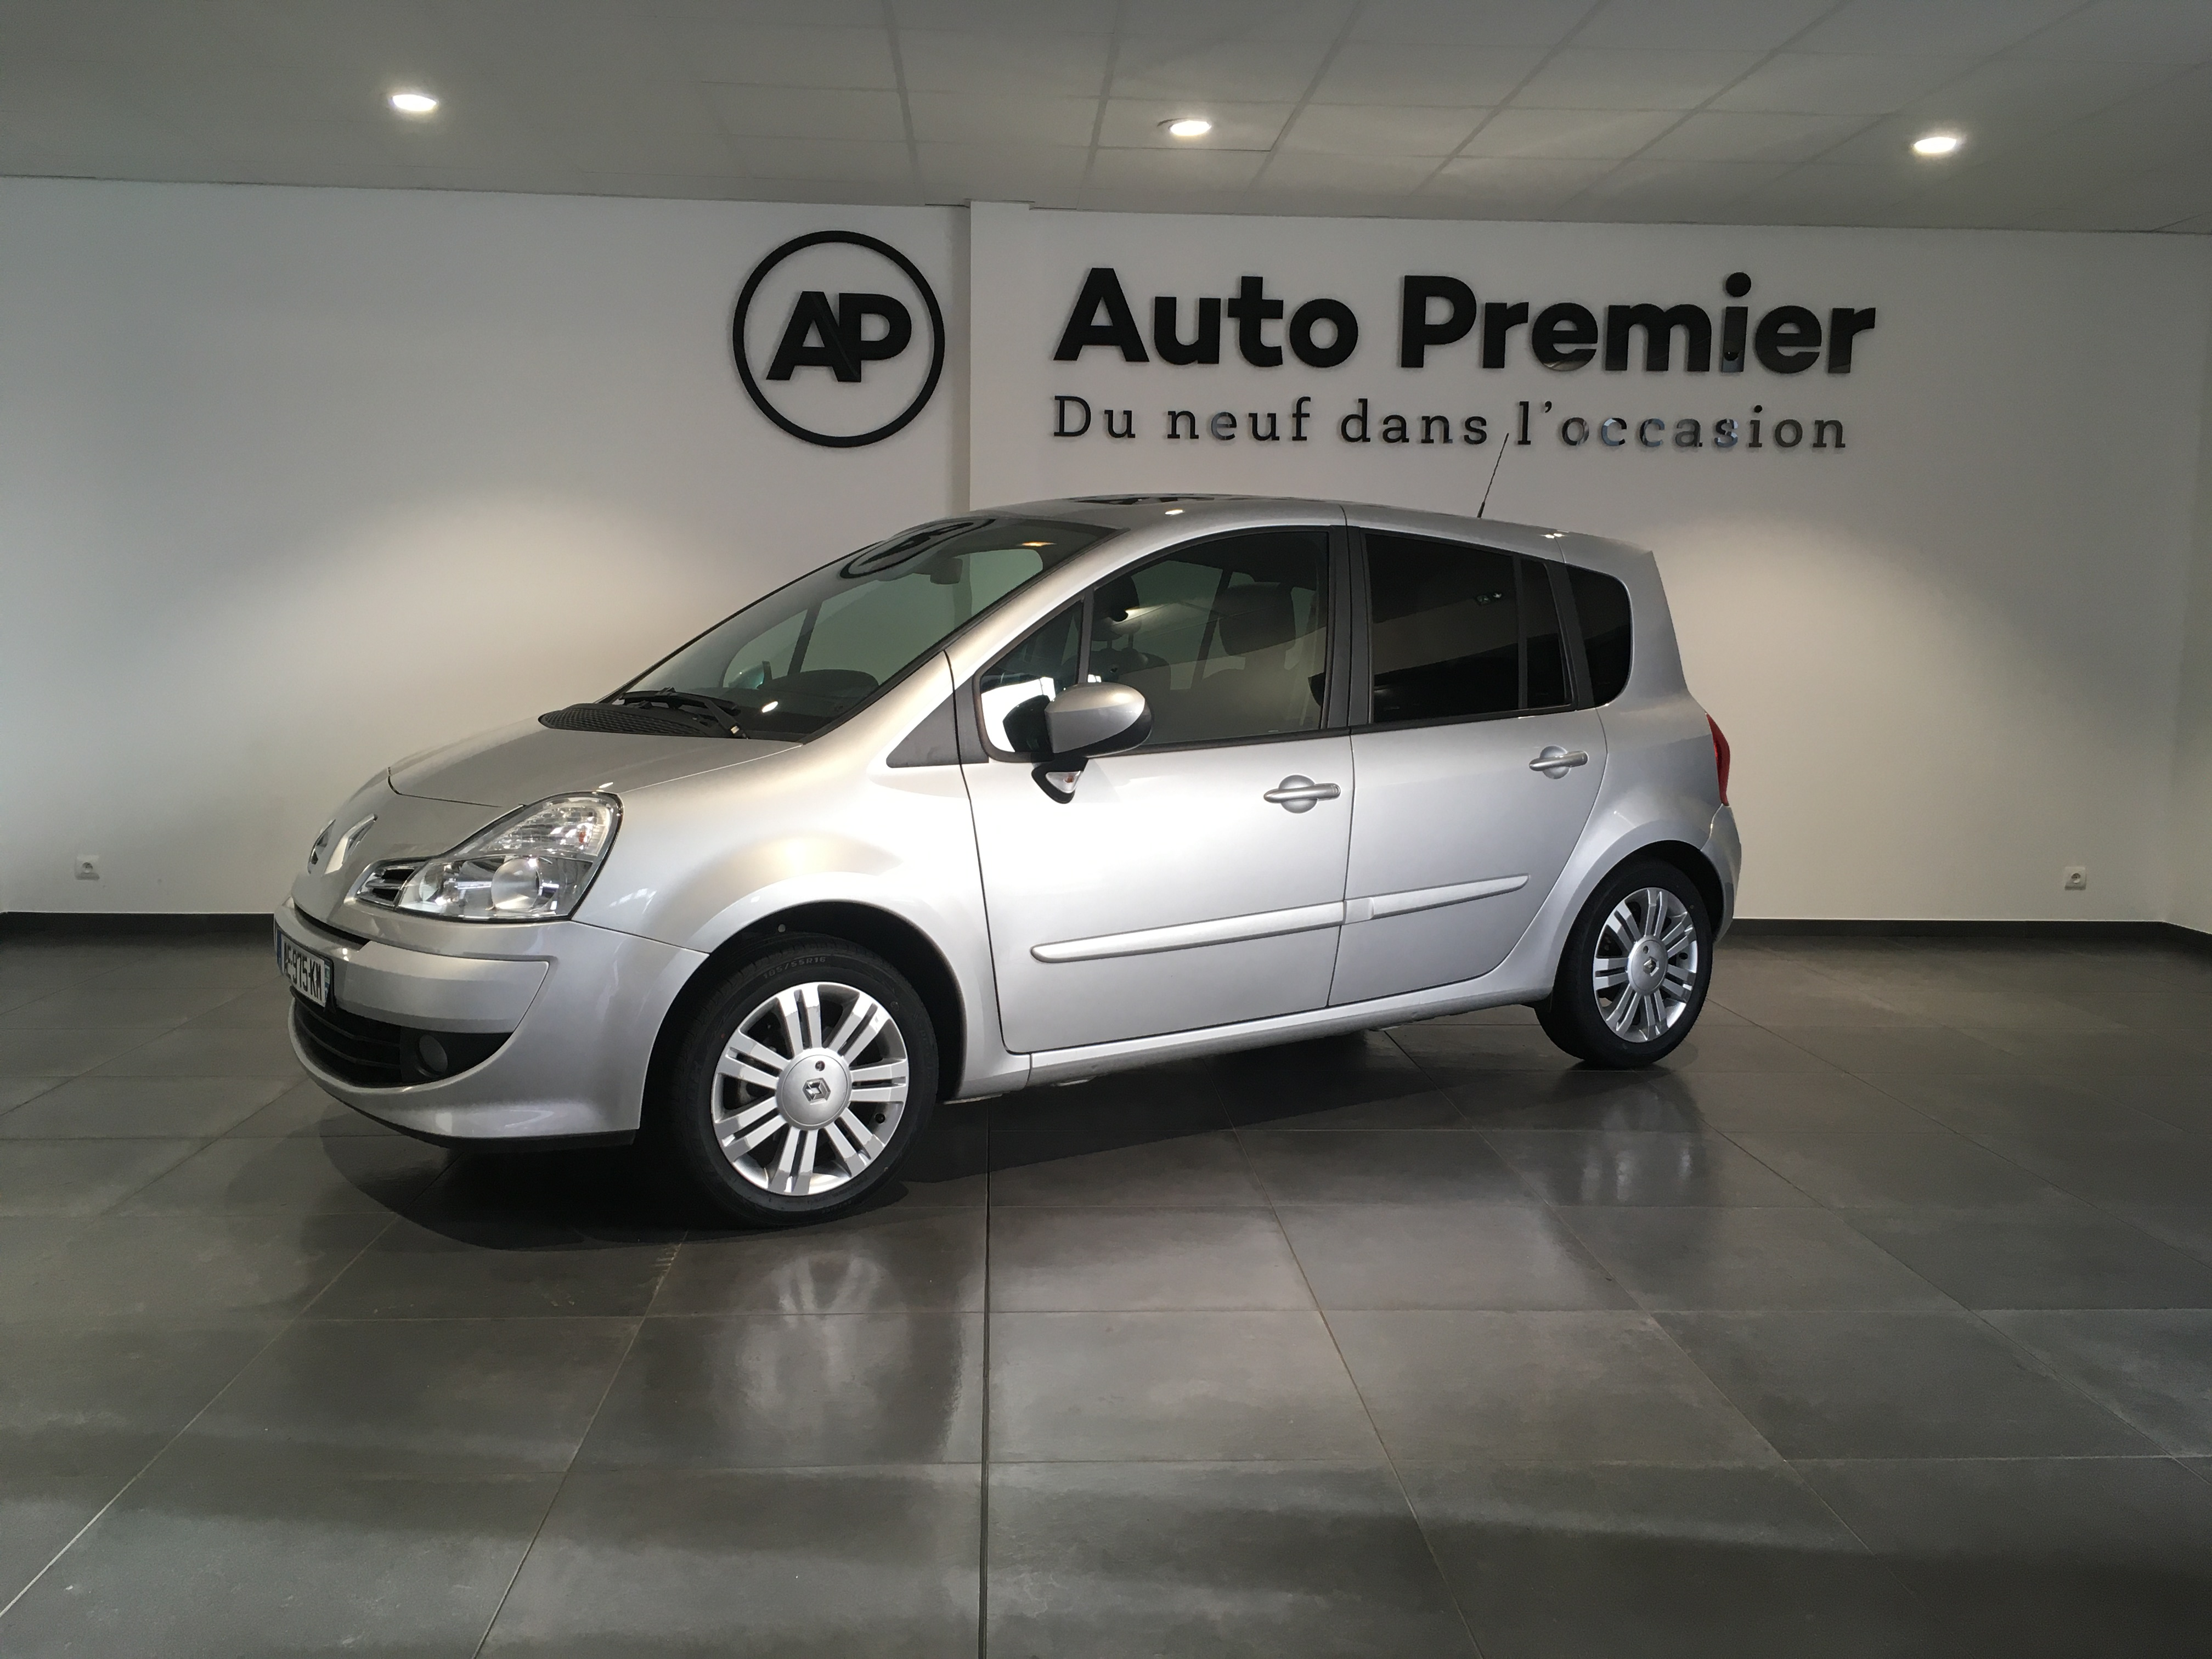 RENAULT - MODUS- 1.5 dCi 85 eco2 Exception